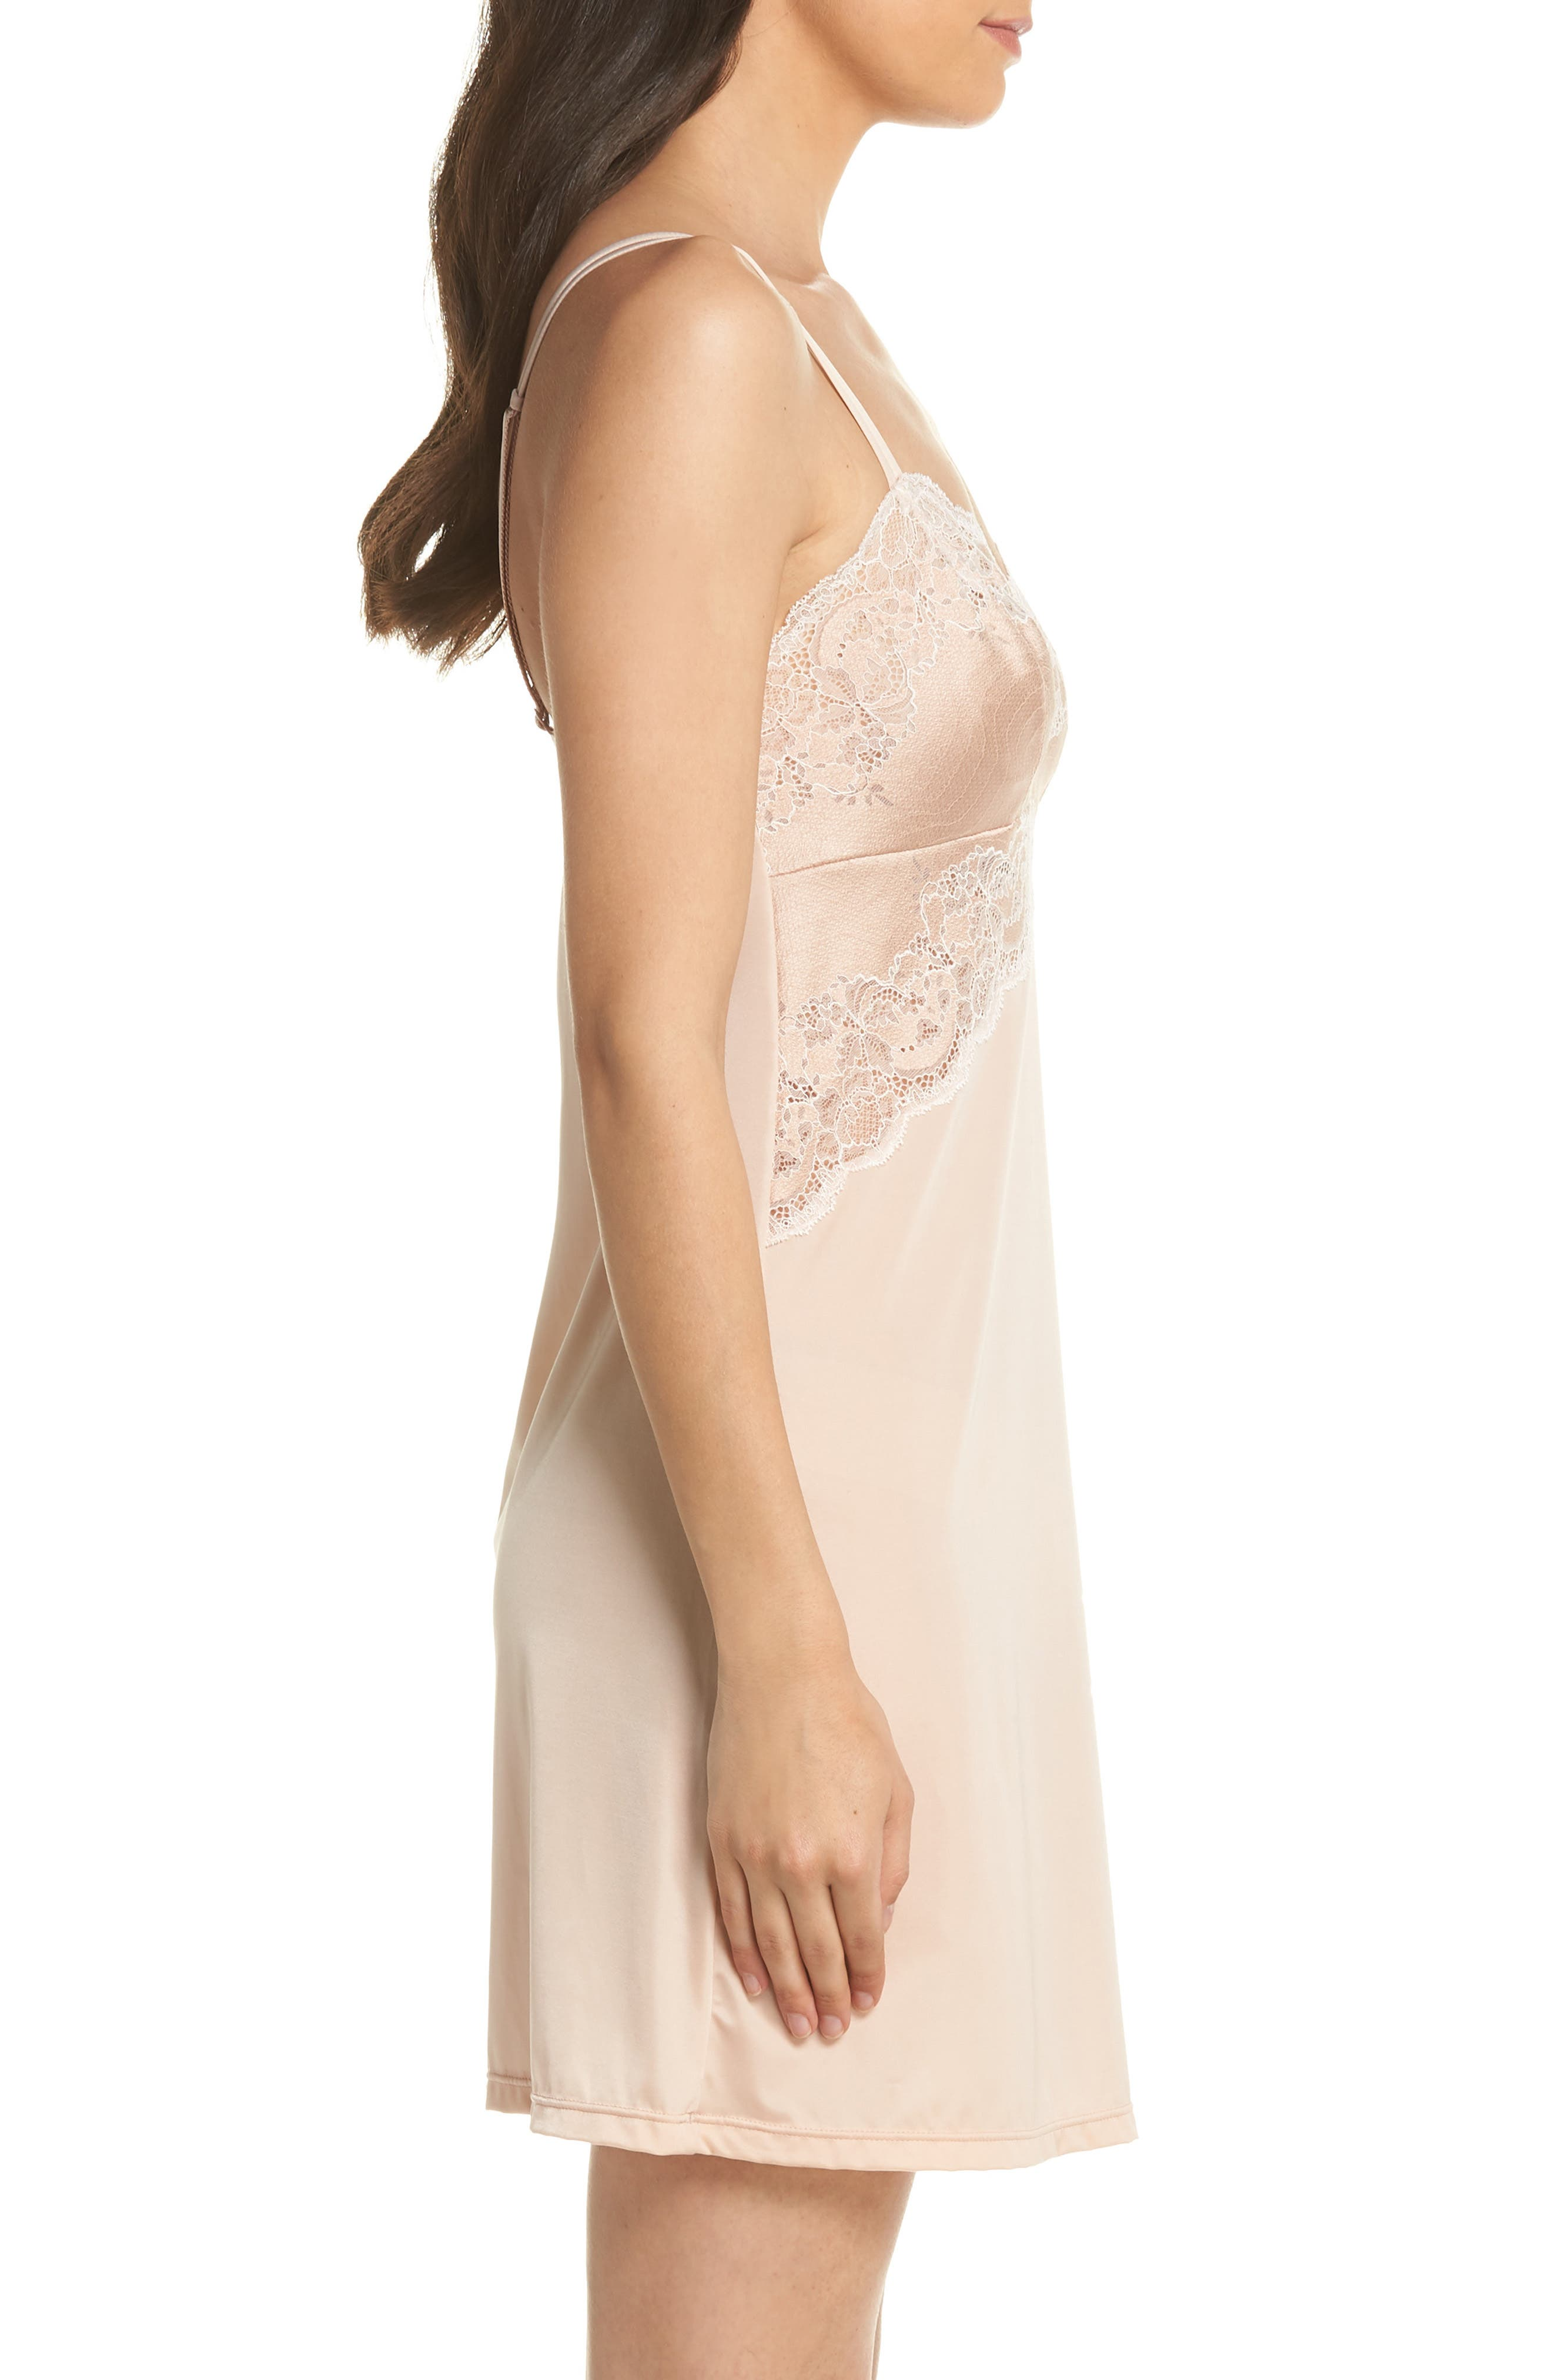 Lace Affair Chemise,                             Alternate thumbnail 3, color,                             Rose Dust/ Angel Wing